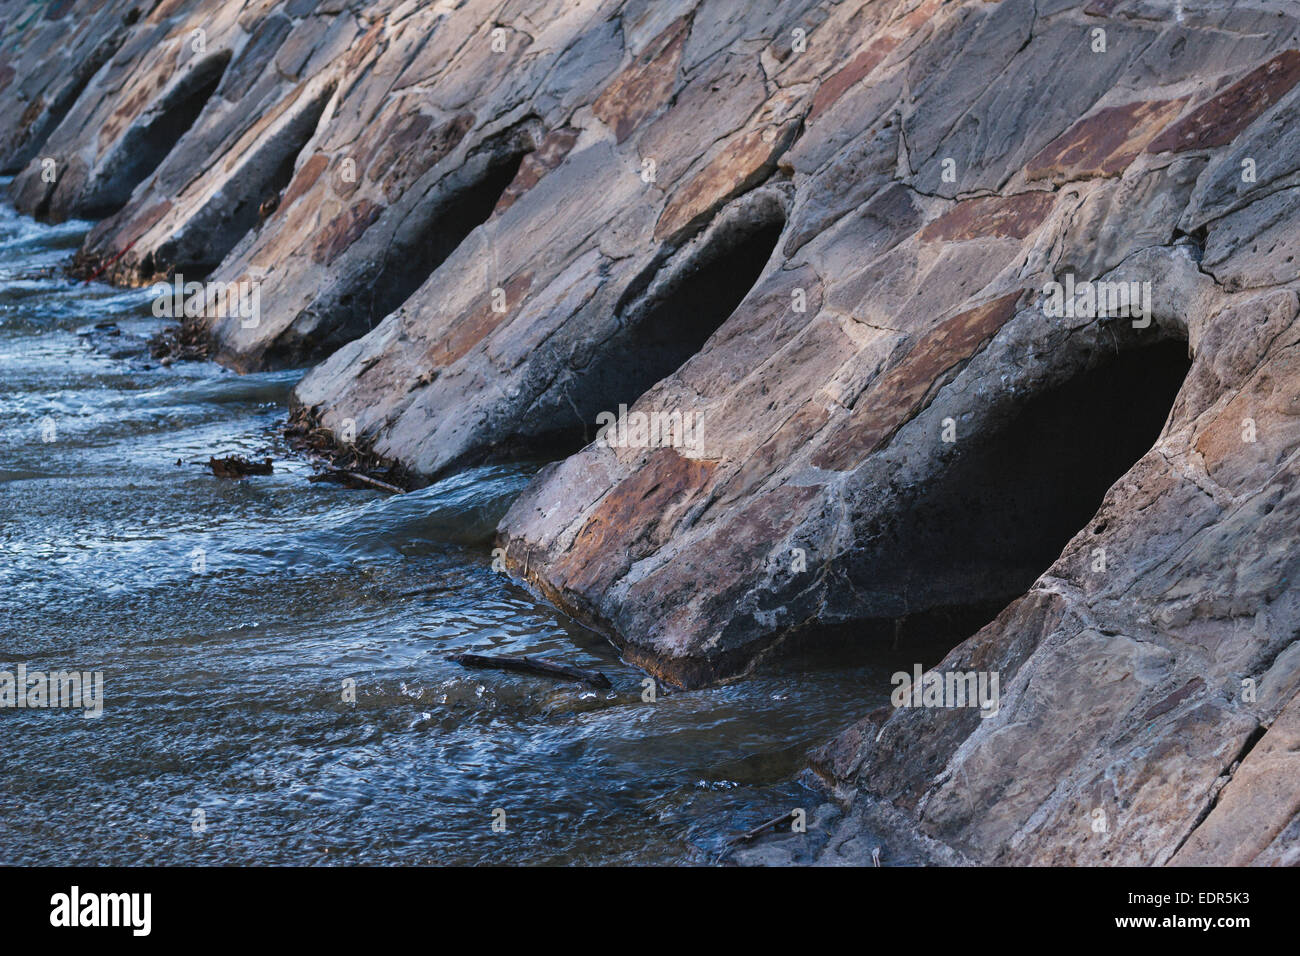 a series of drains for water - Stock Image